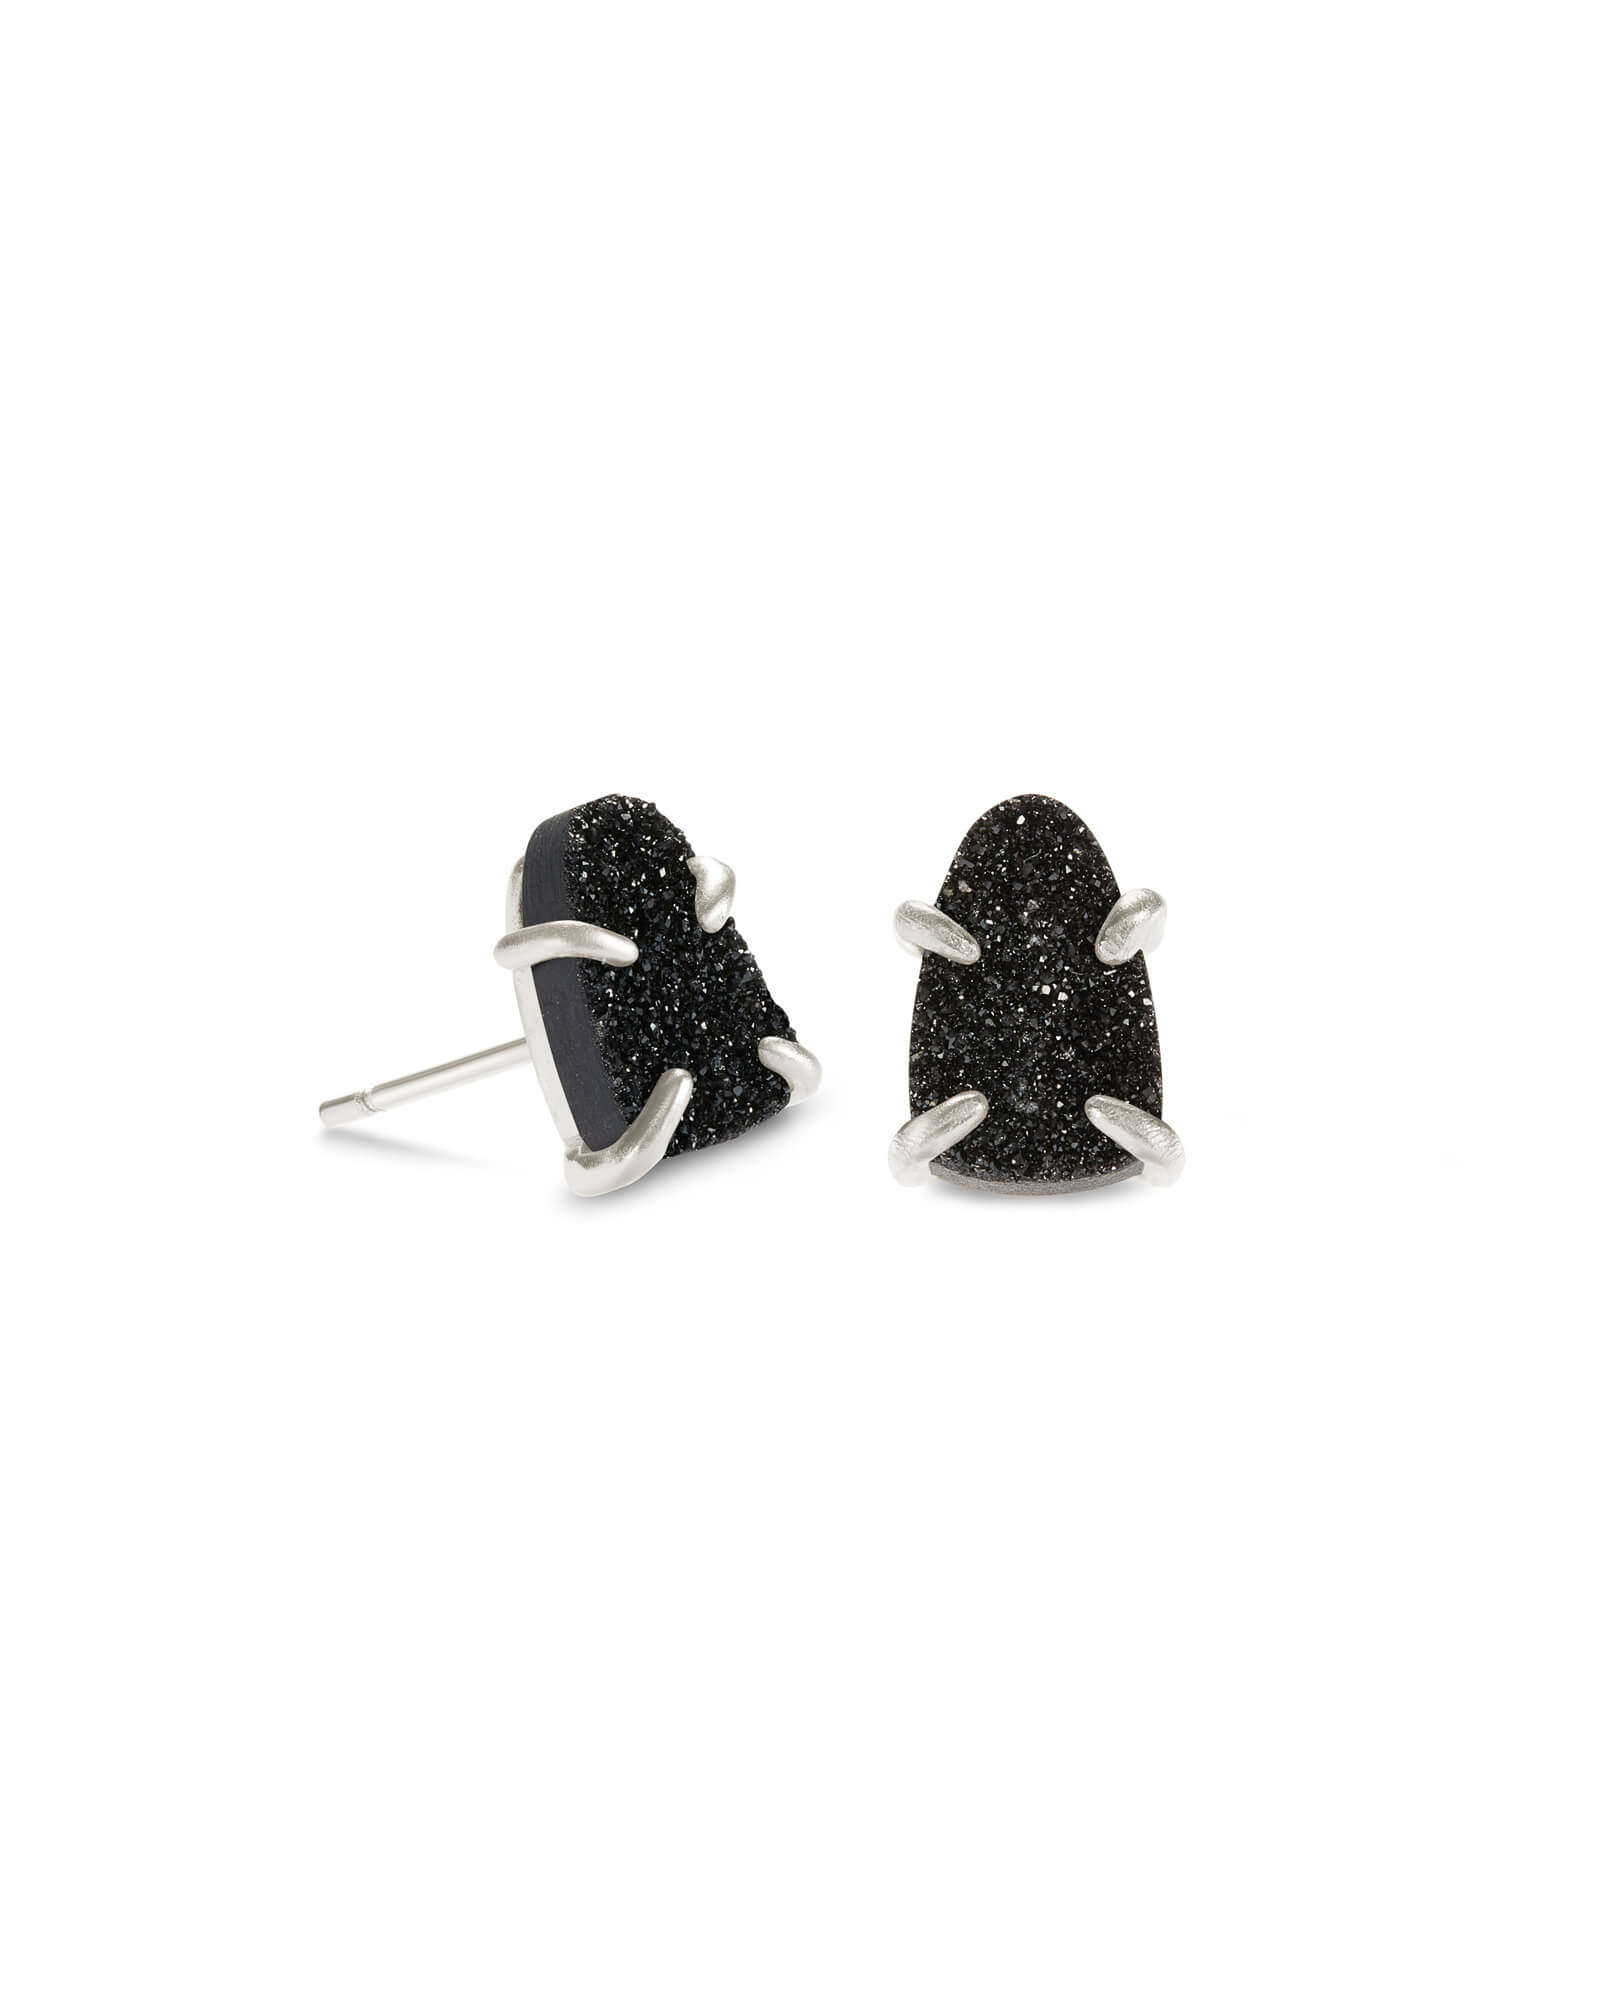 Harriett Silver Stud Earrings in Black Drusy